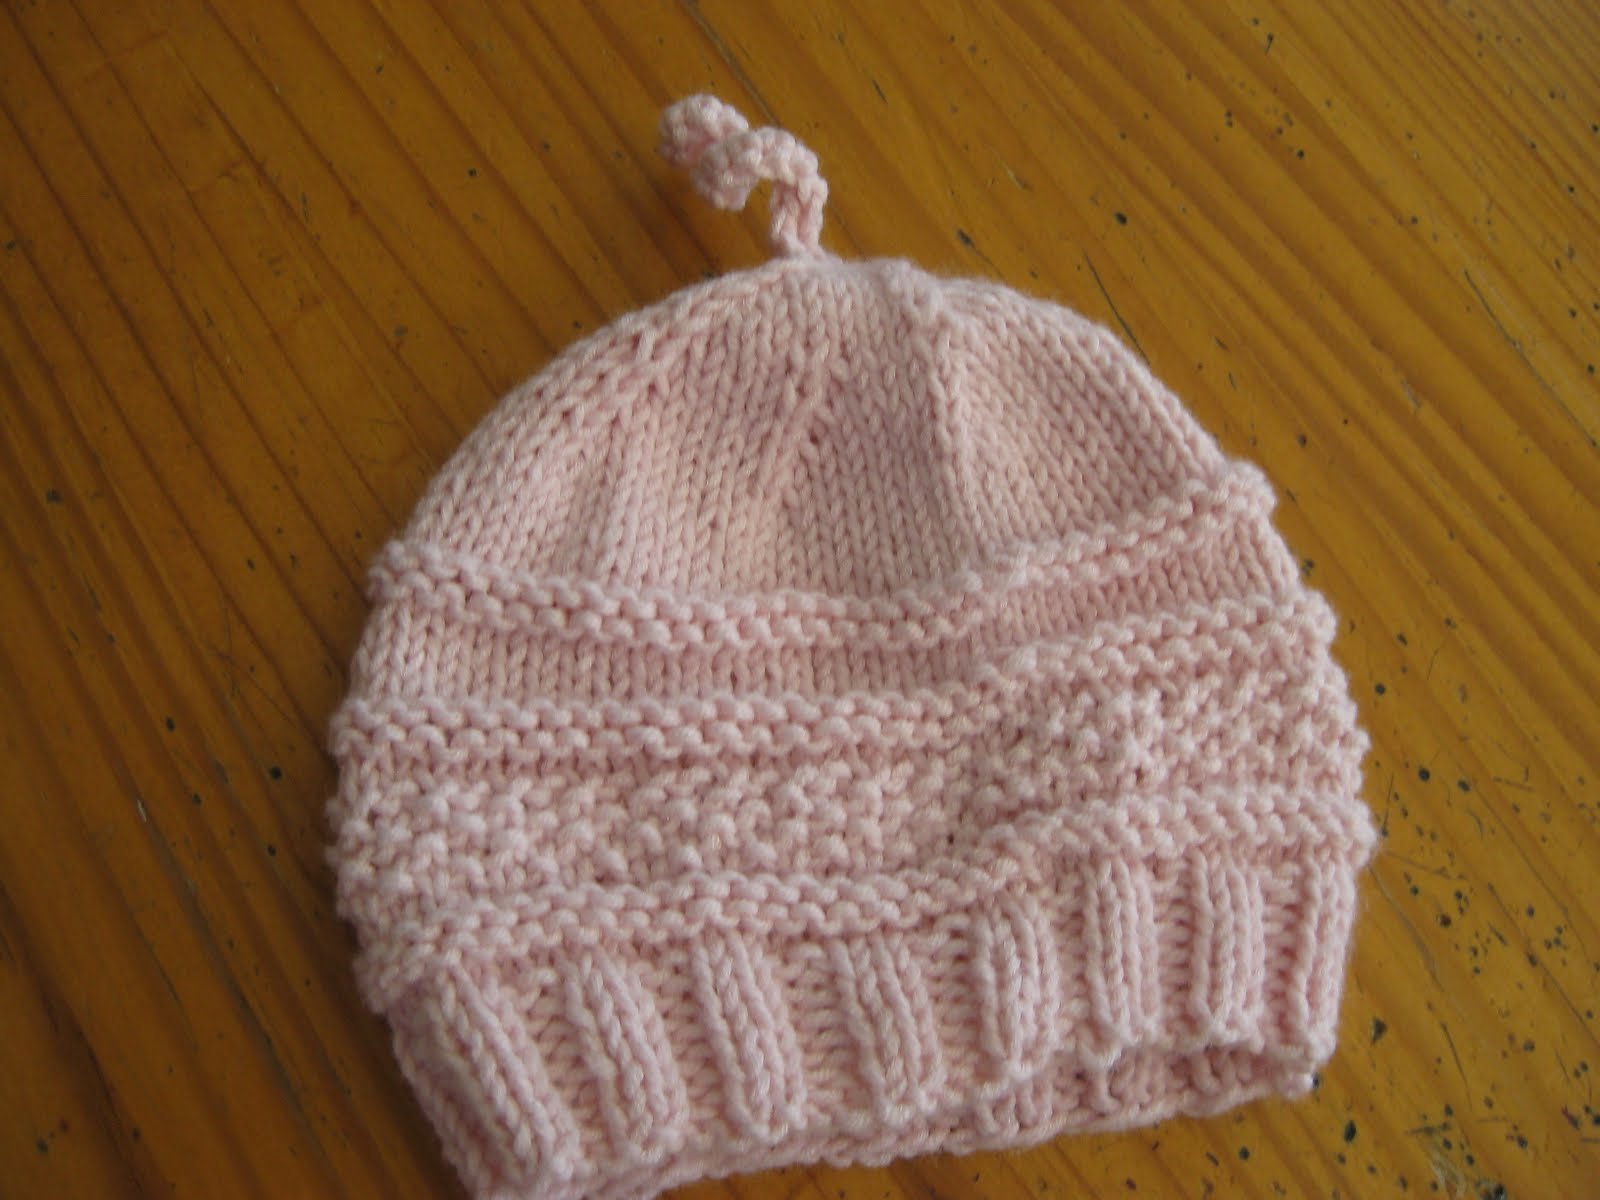 Baby Hats Free Knitting Patterns : knitting baby hats-Knitting Gallery